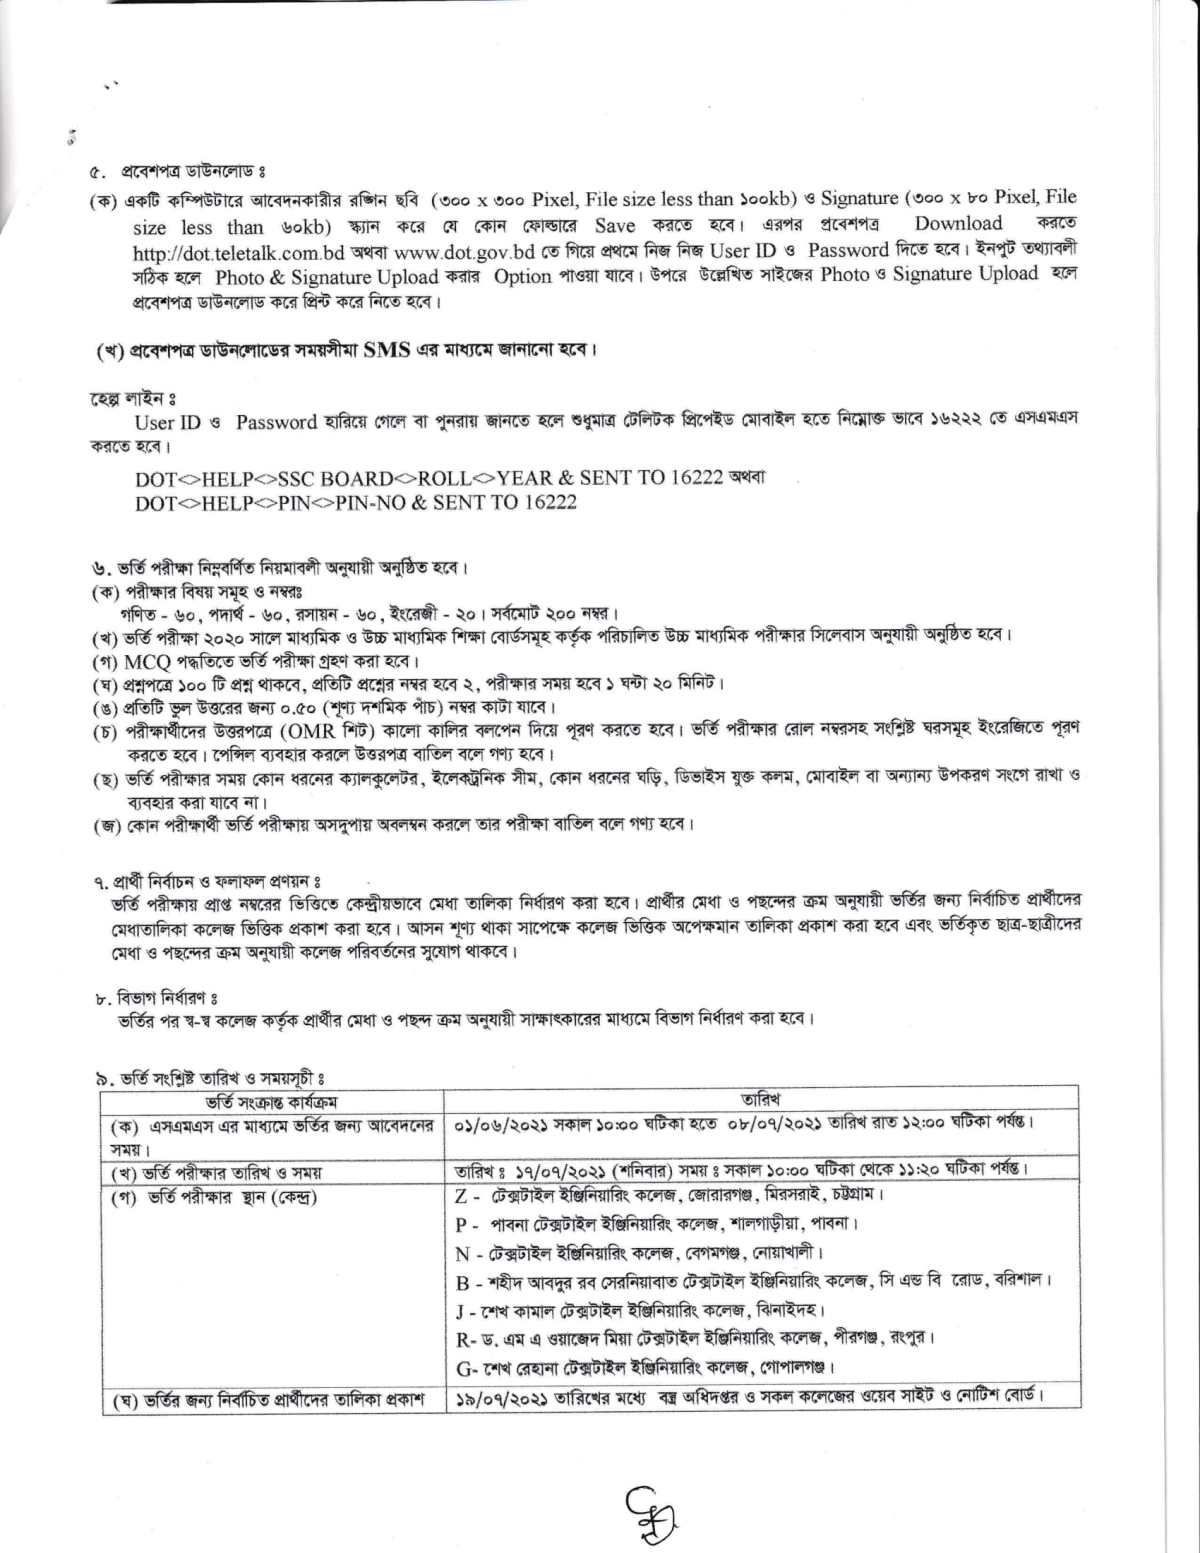 Textile Engineering College Admission Application Process